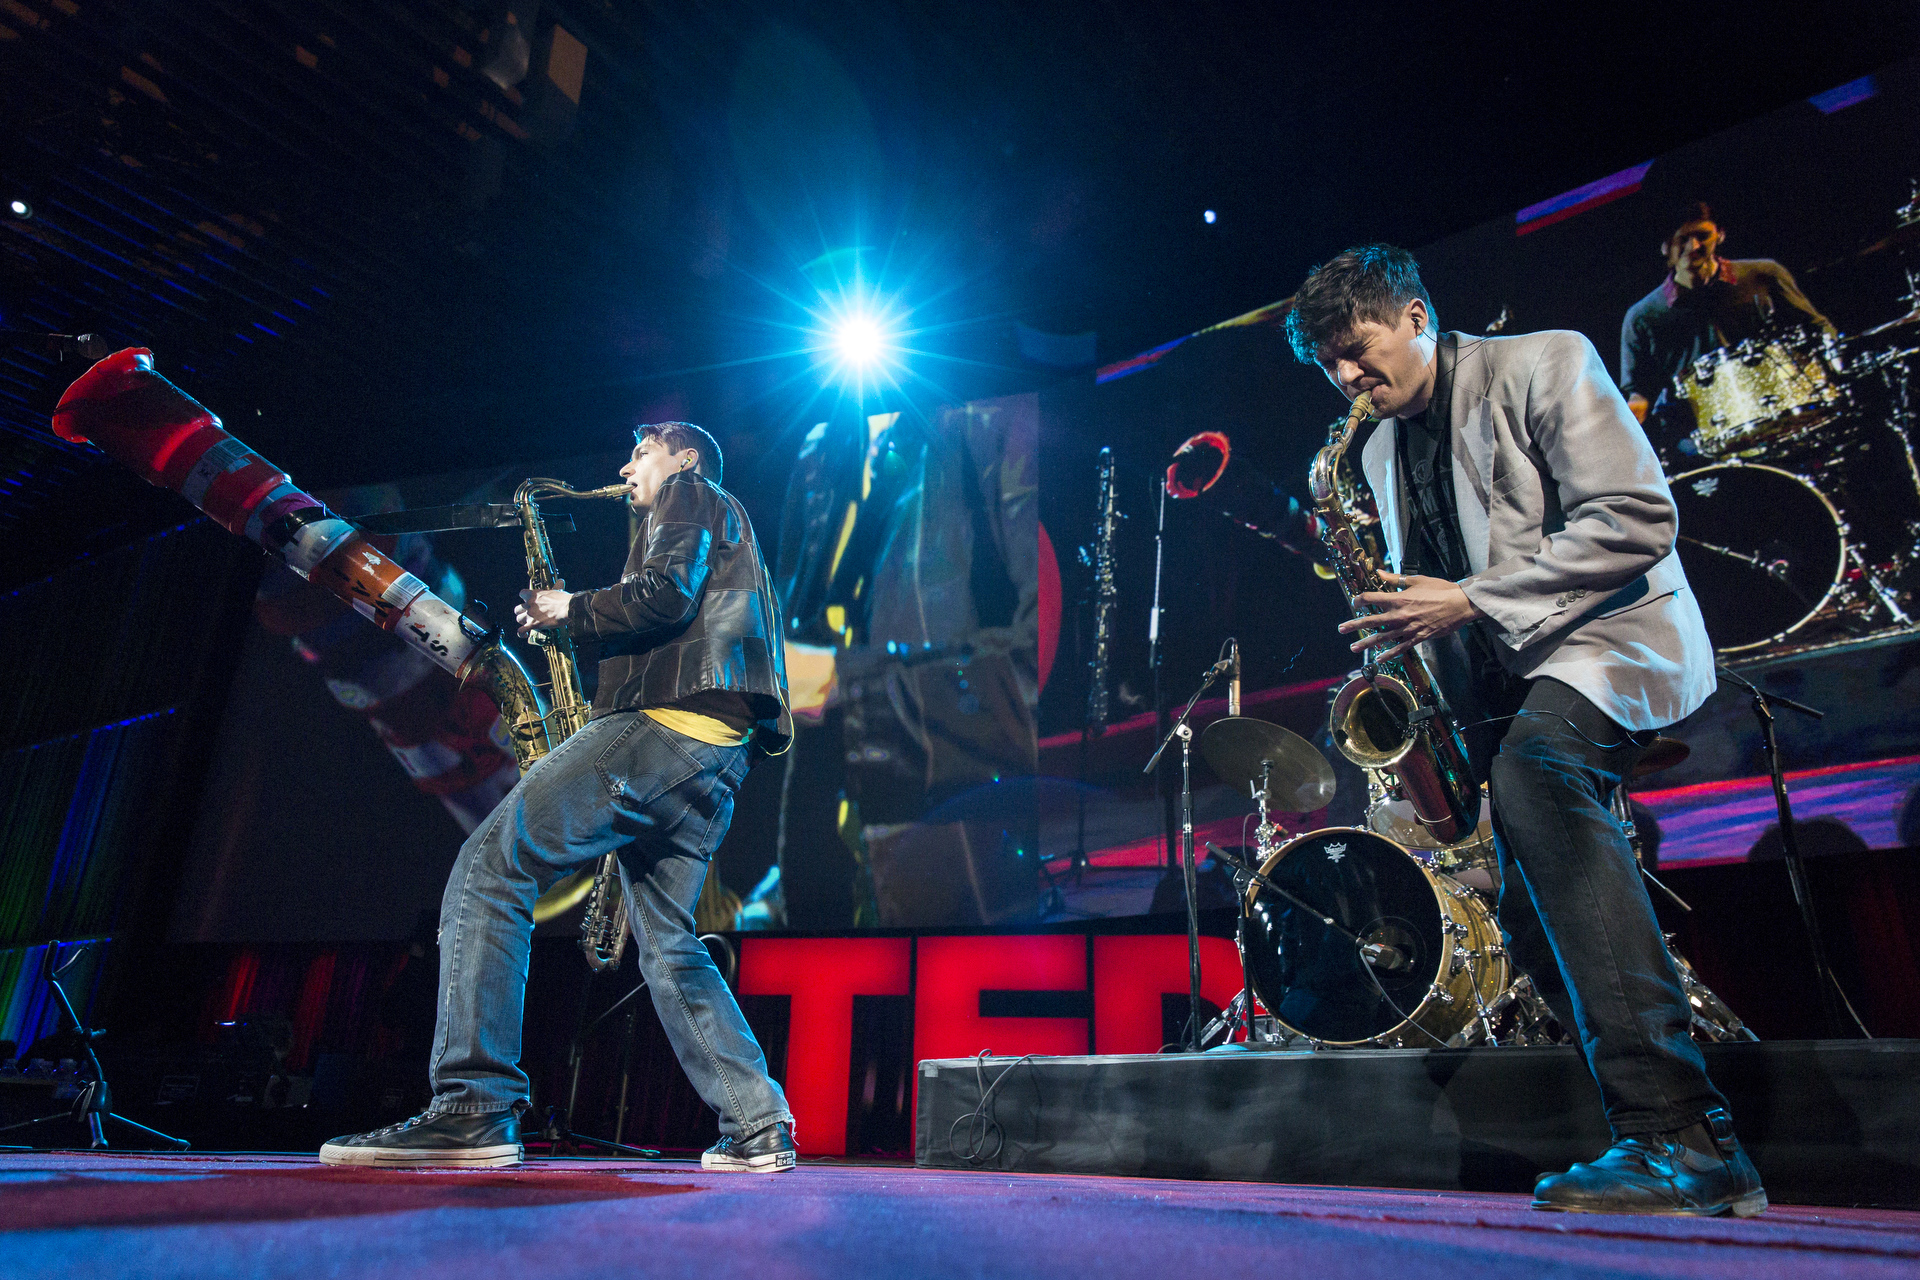 Moon Hooch performs at TED2015 - Truth and Dare, Session 1. Photo: Bret Hartman/TED